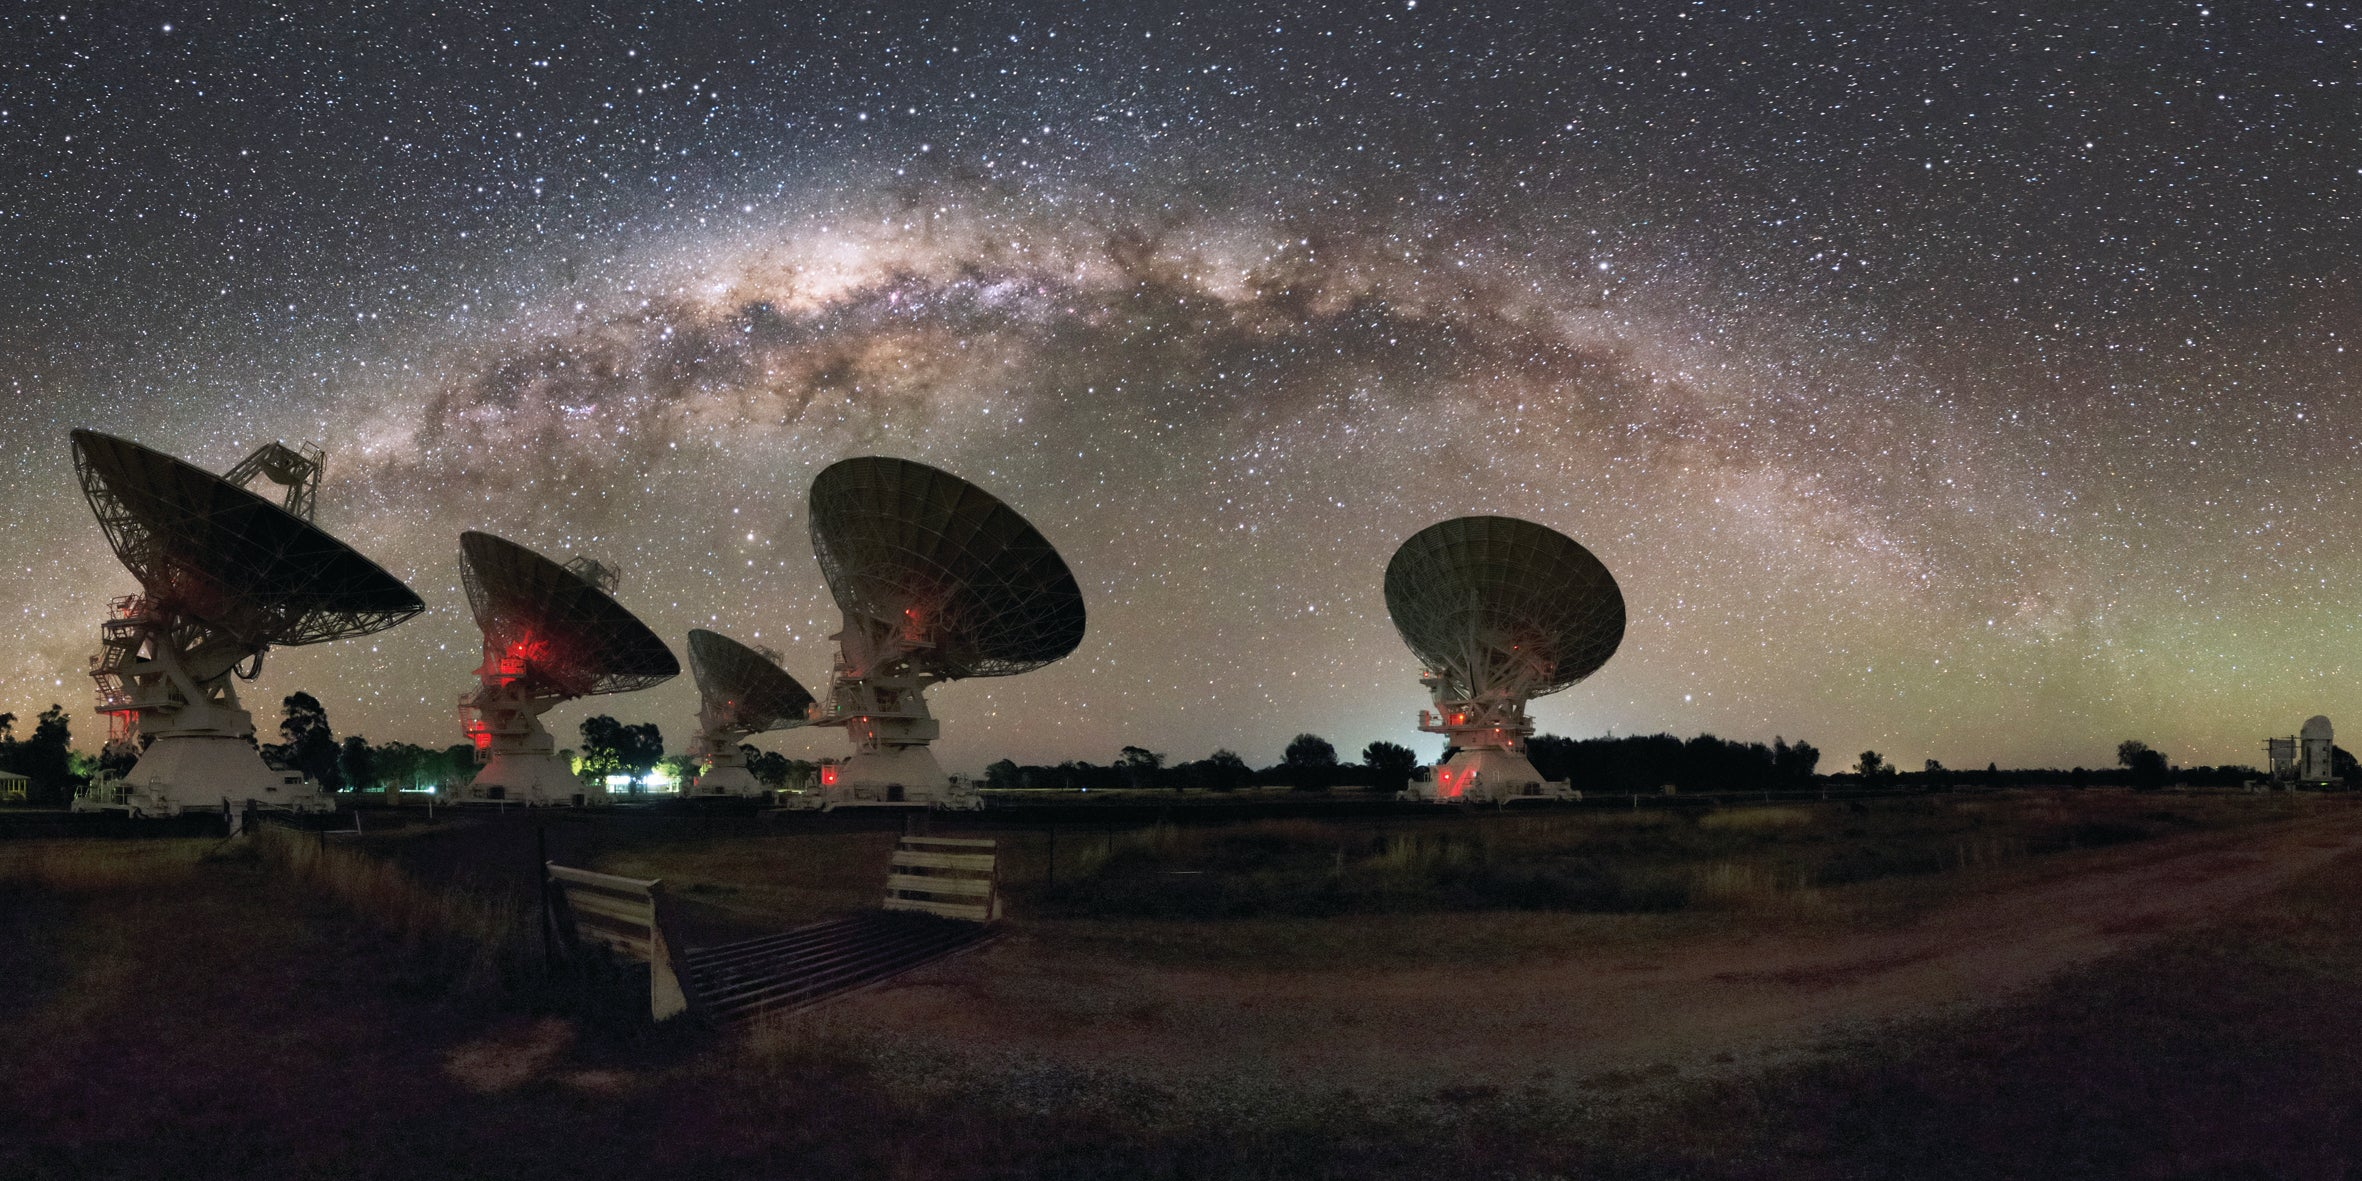 Scientists Pinpoint The Origin Of Mysterious, Immense Radio Burst